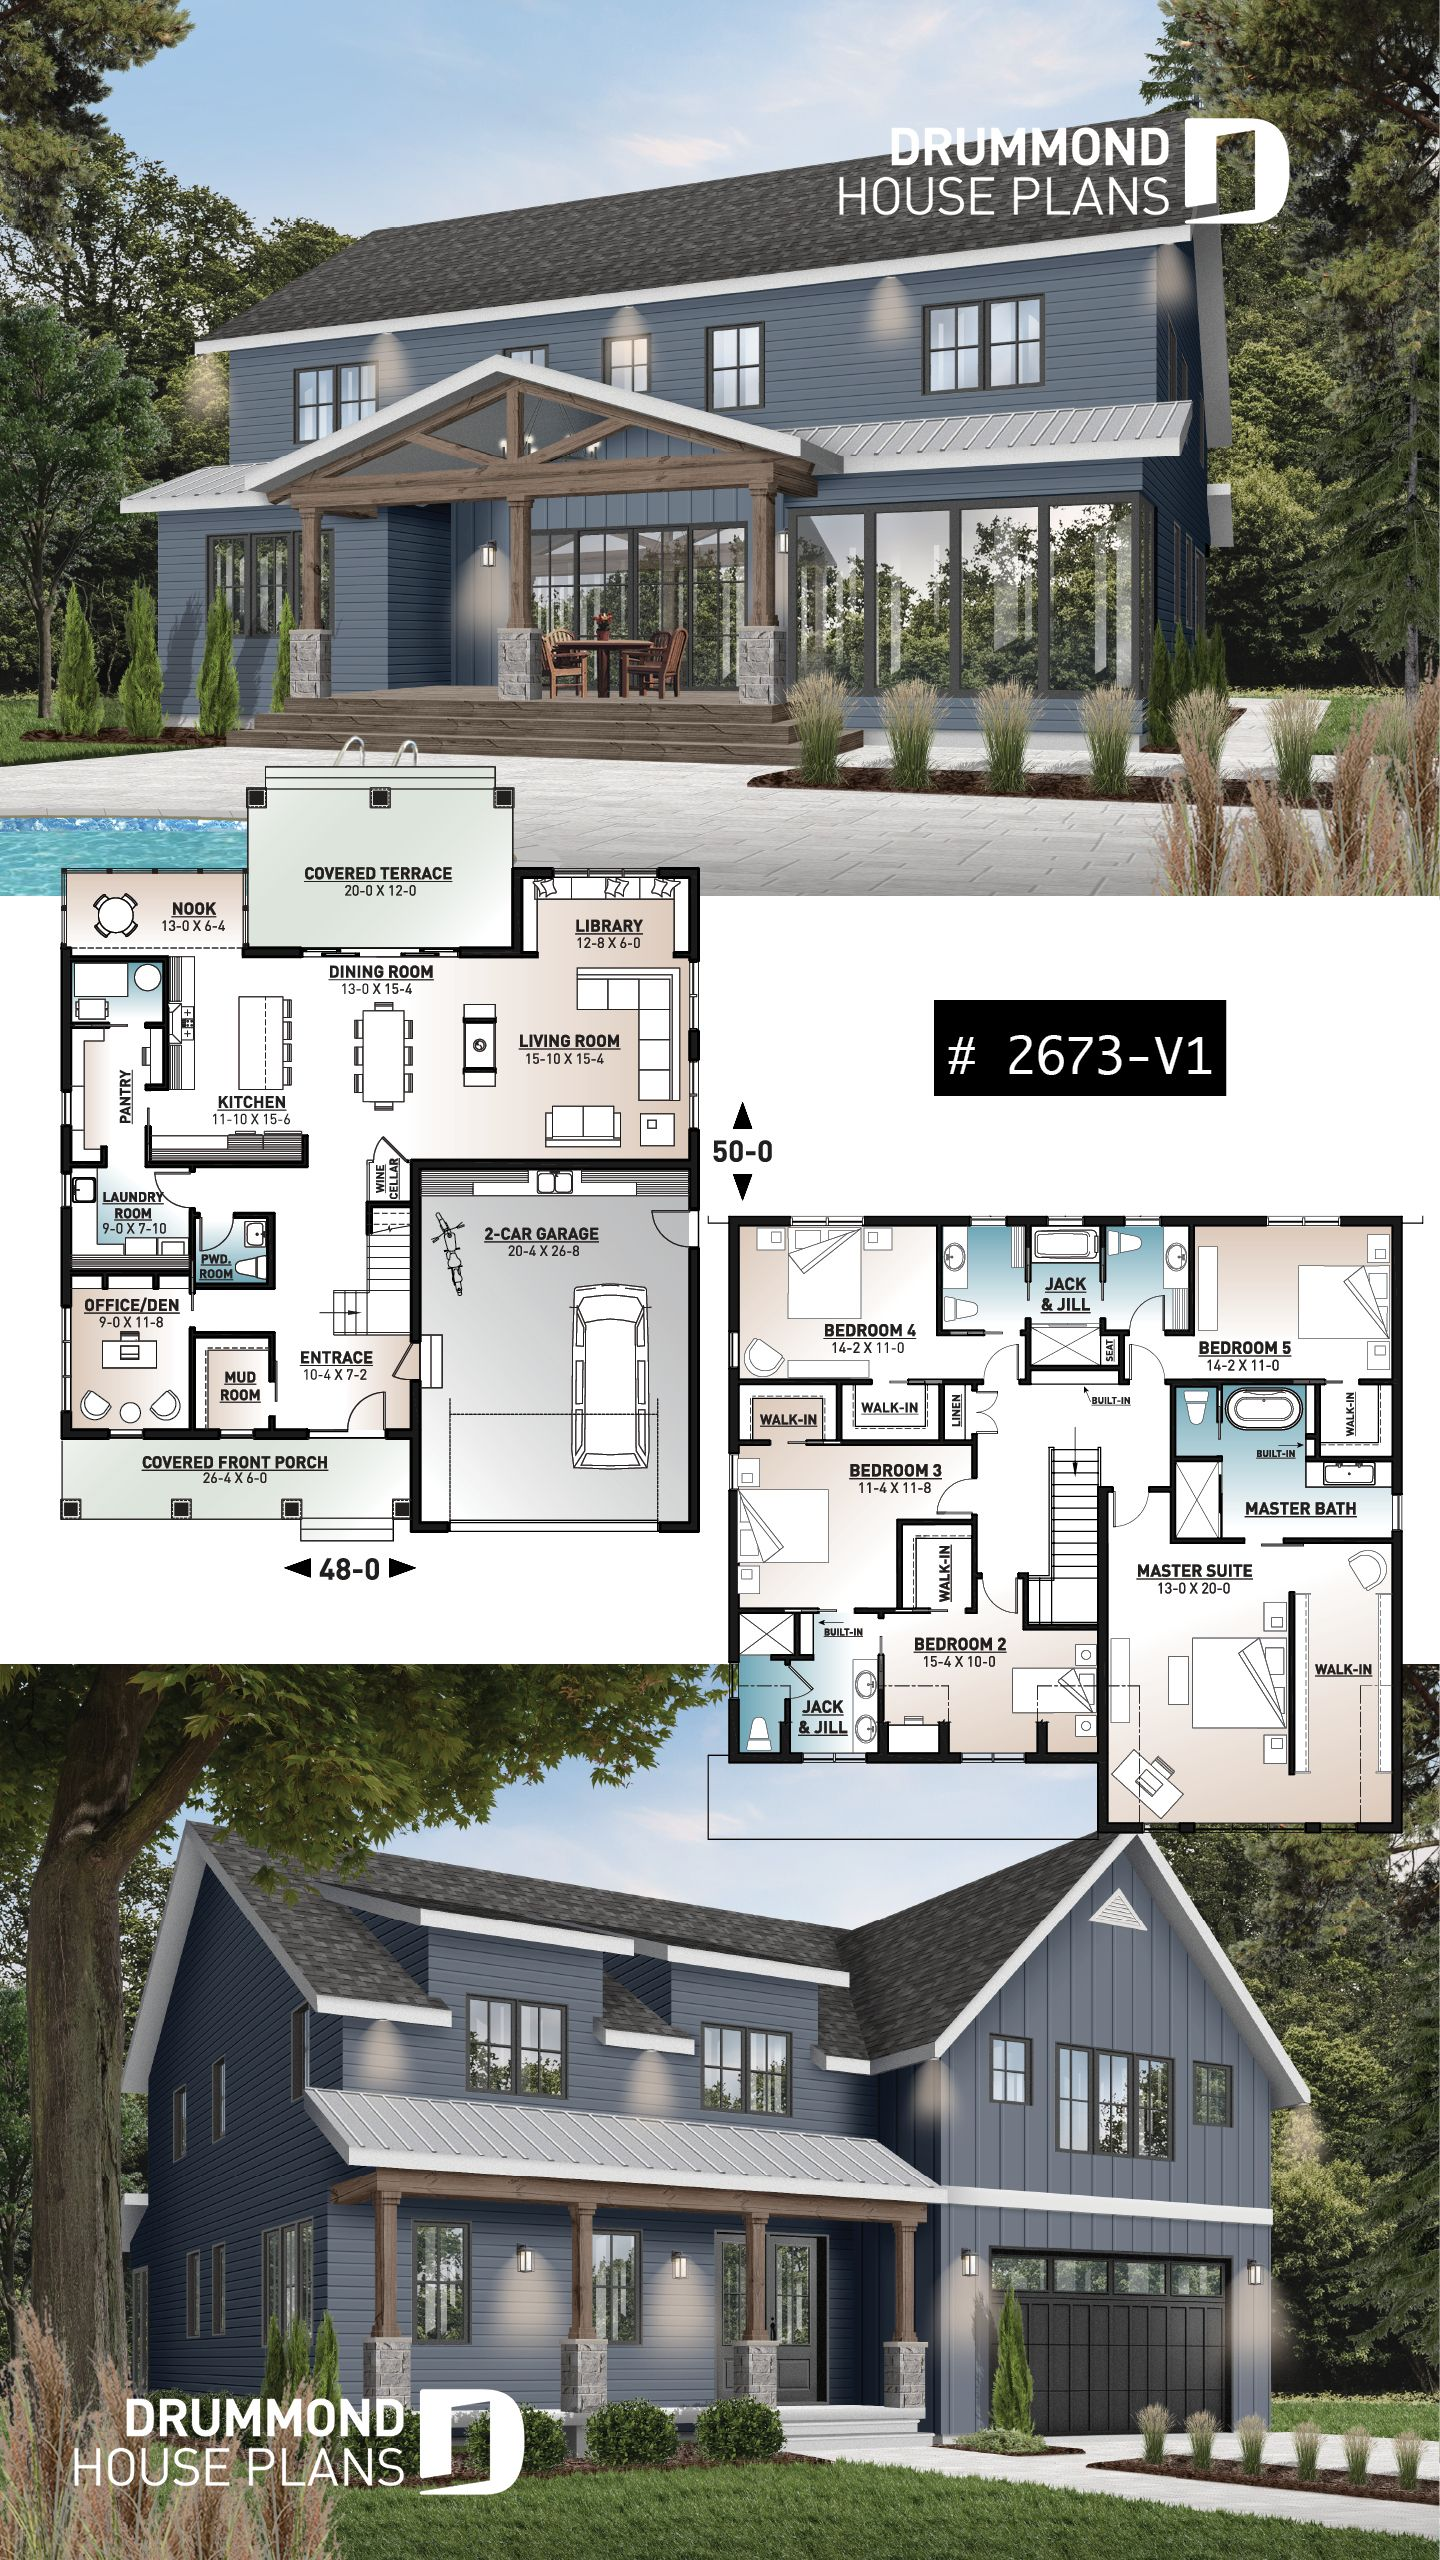 Discover The Plan 2673 V1 St Arnaud 2 Which Will Please You For Its 5 Bedrooms And For Its Farmhouse Styles House Plans Farmhouse Sims House Plans Ranch House Plans